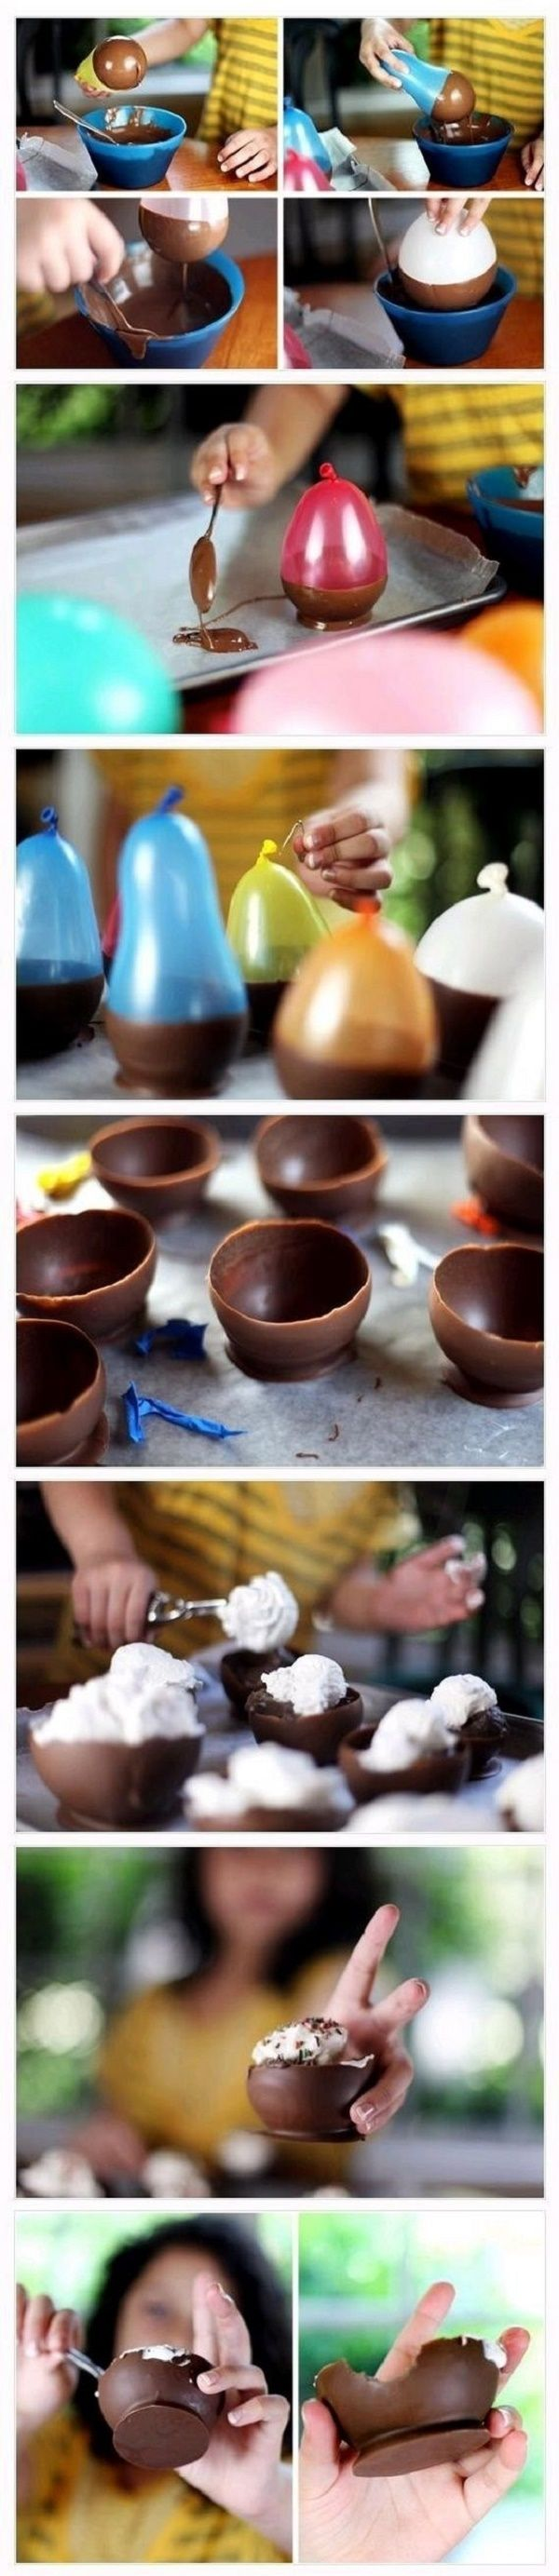 Who said balloons were only for parties? Turns out, there's a variety of awesome things that balloons can be used for. Here are 26 crafty ways you can use balloons for your next arts and crafts projects. All of them are really simple and perfect for #home decorations like #Easter, weddings, pool par…